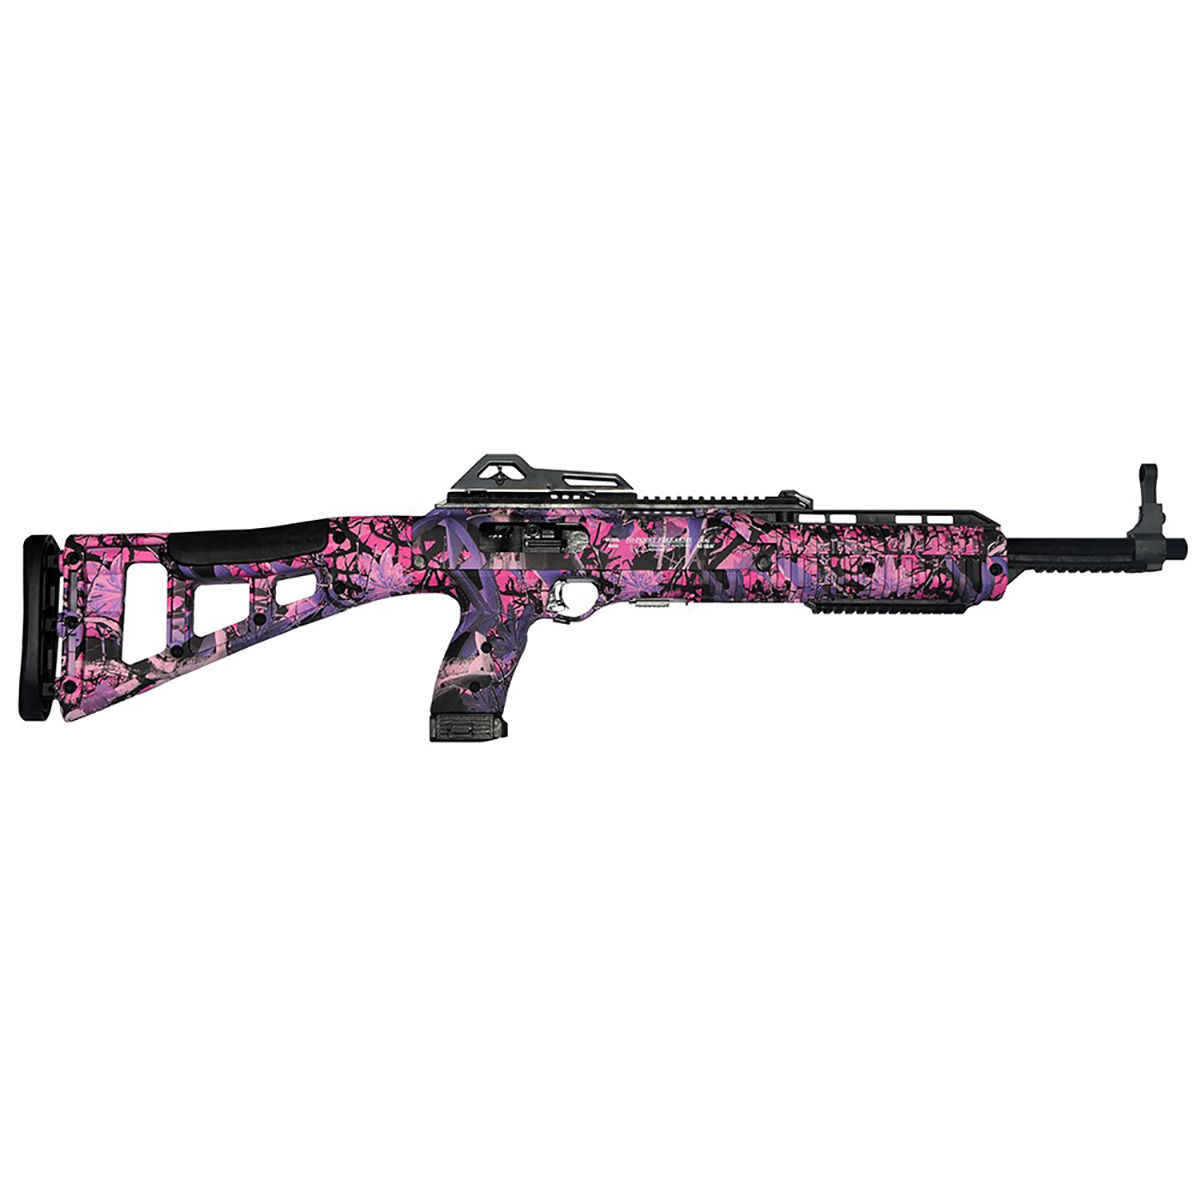 40TS Muddy Girl Camo